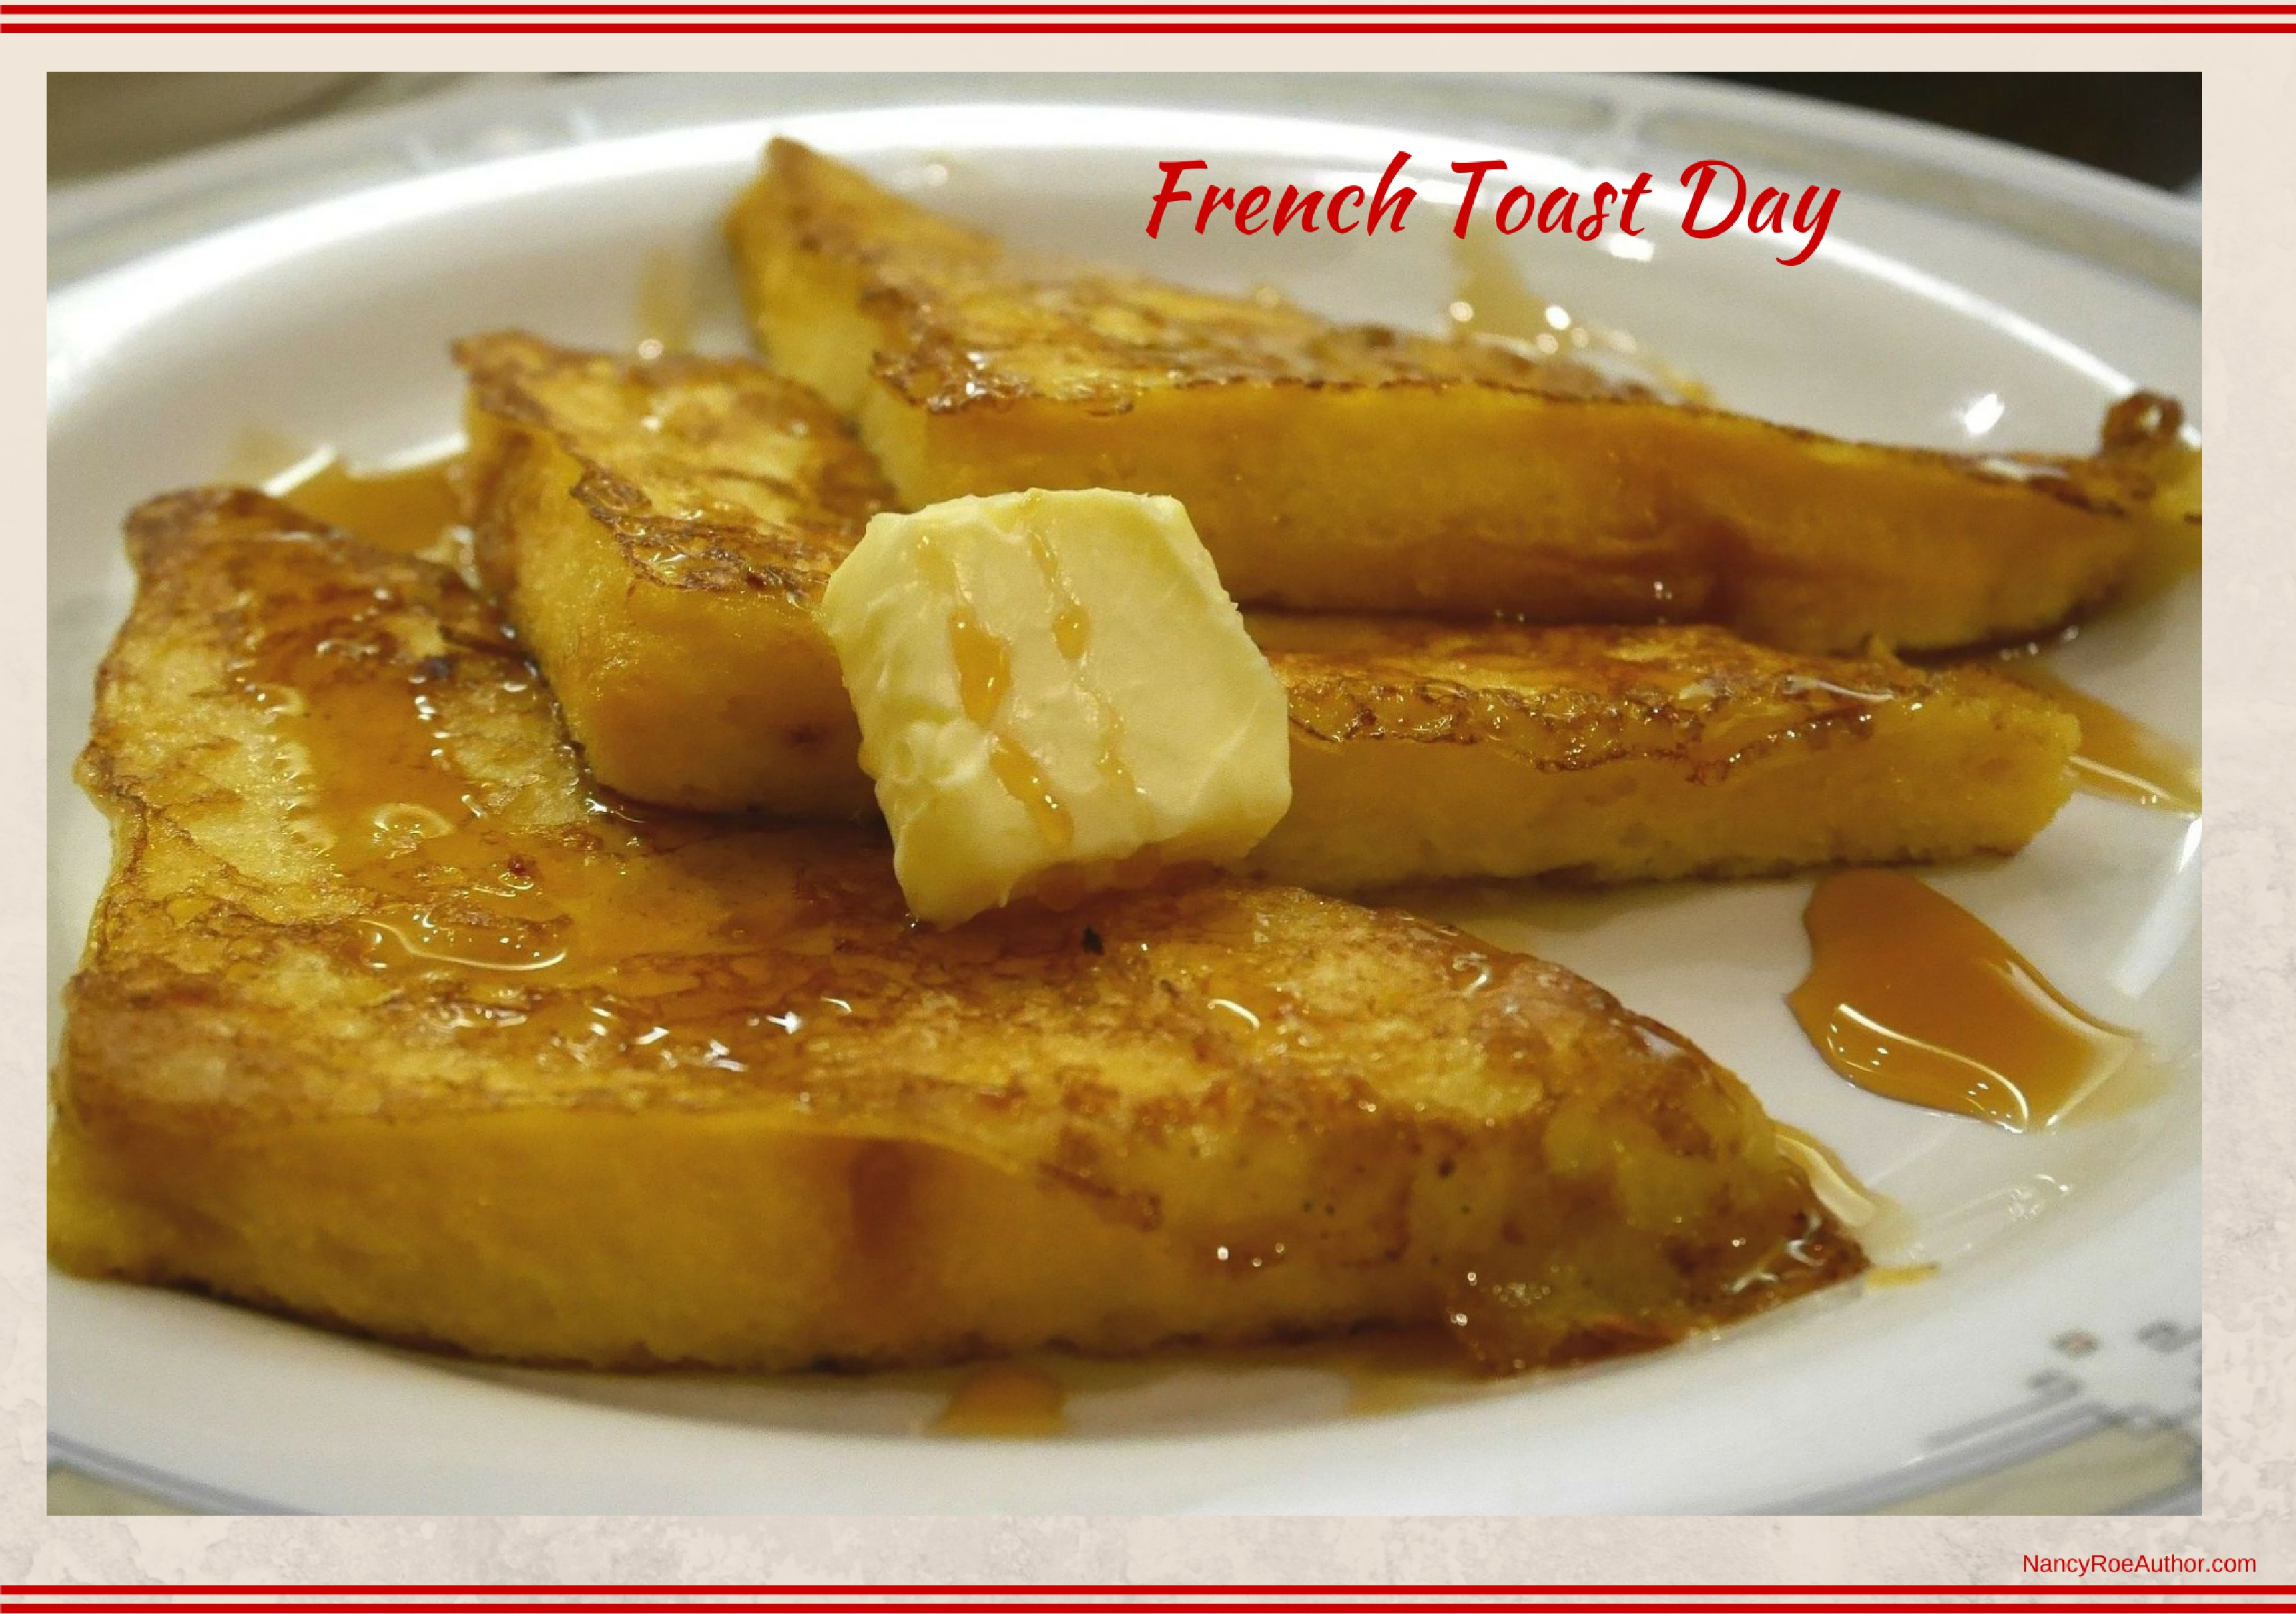 French Toast Day